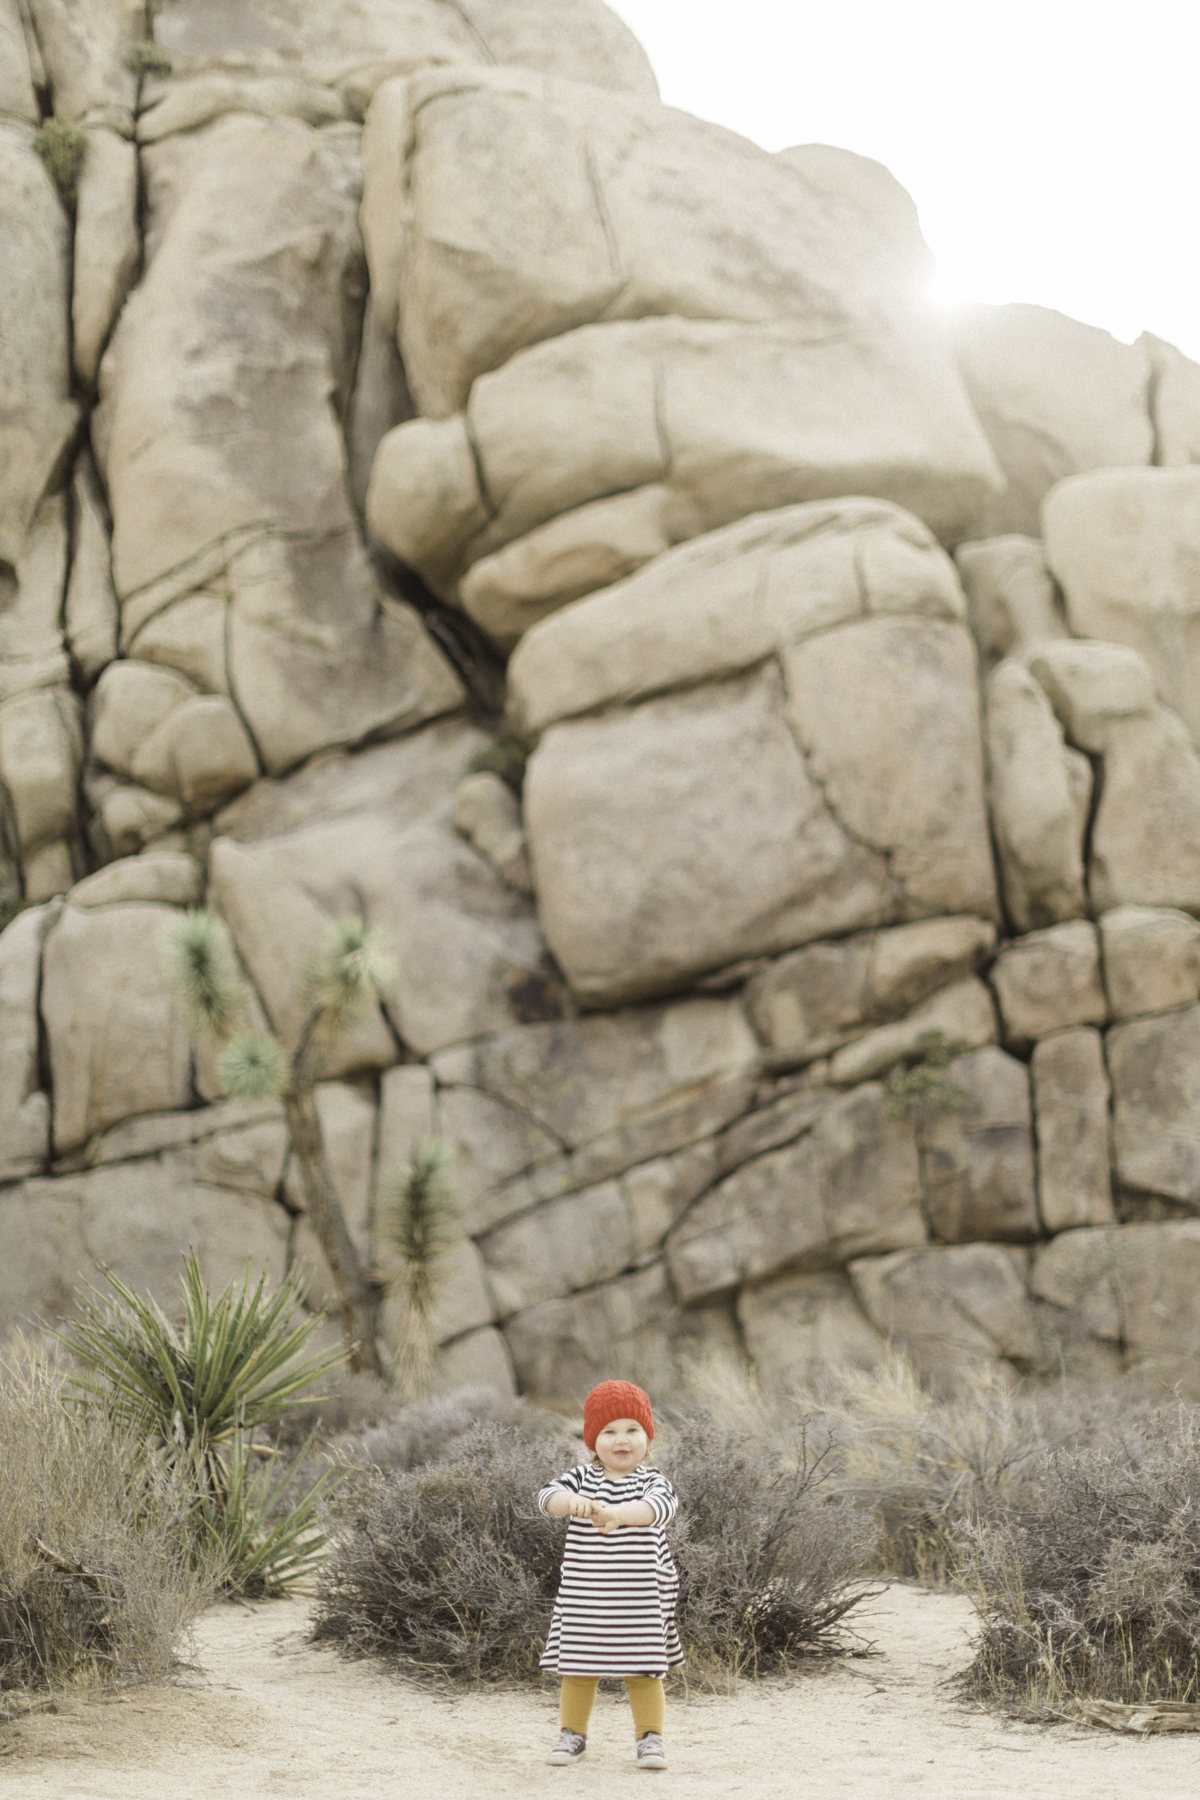 Joshua-Tree-calgary-kids-photography-shop-the-skinny-17.jpg